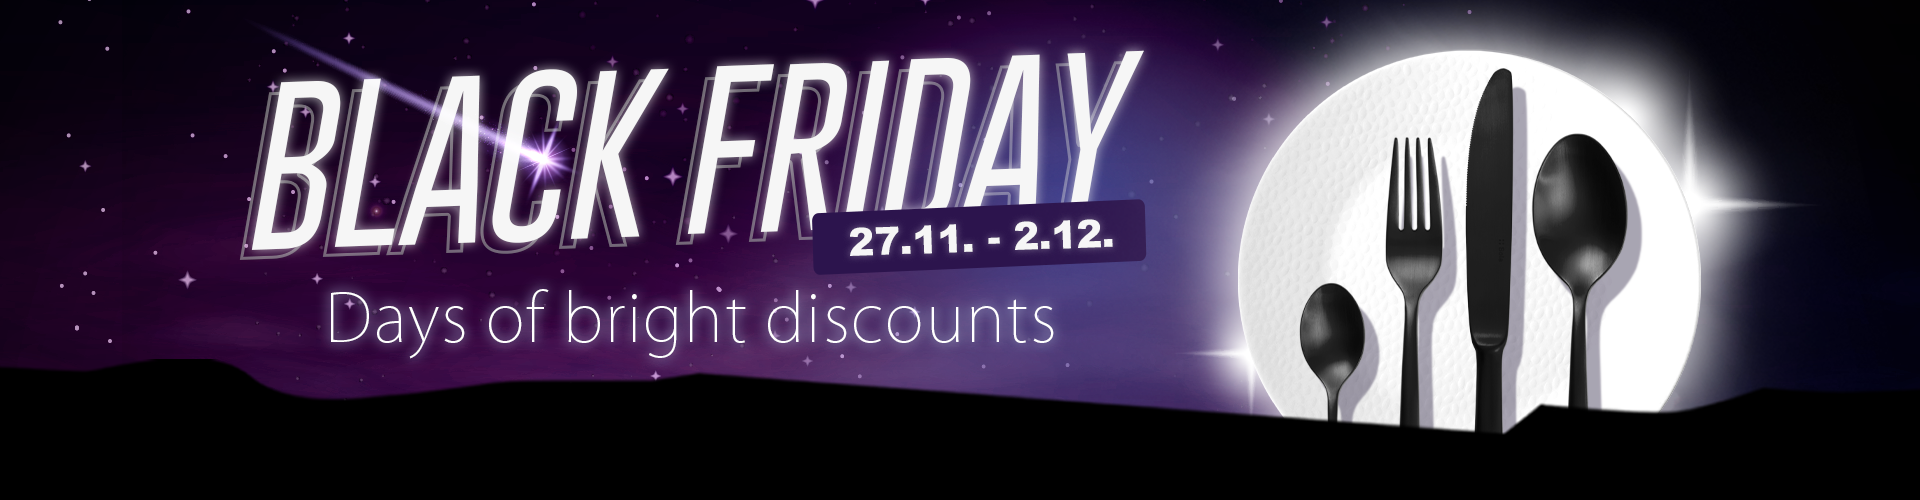 Days of bright discounts